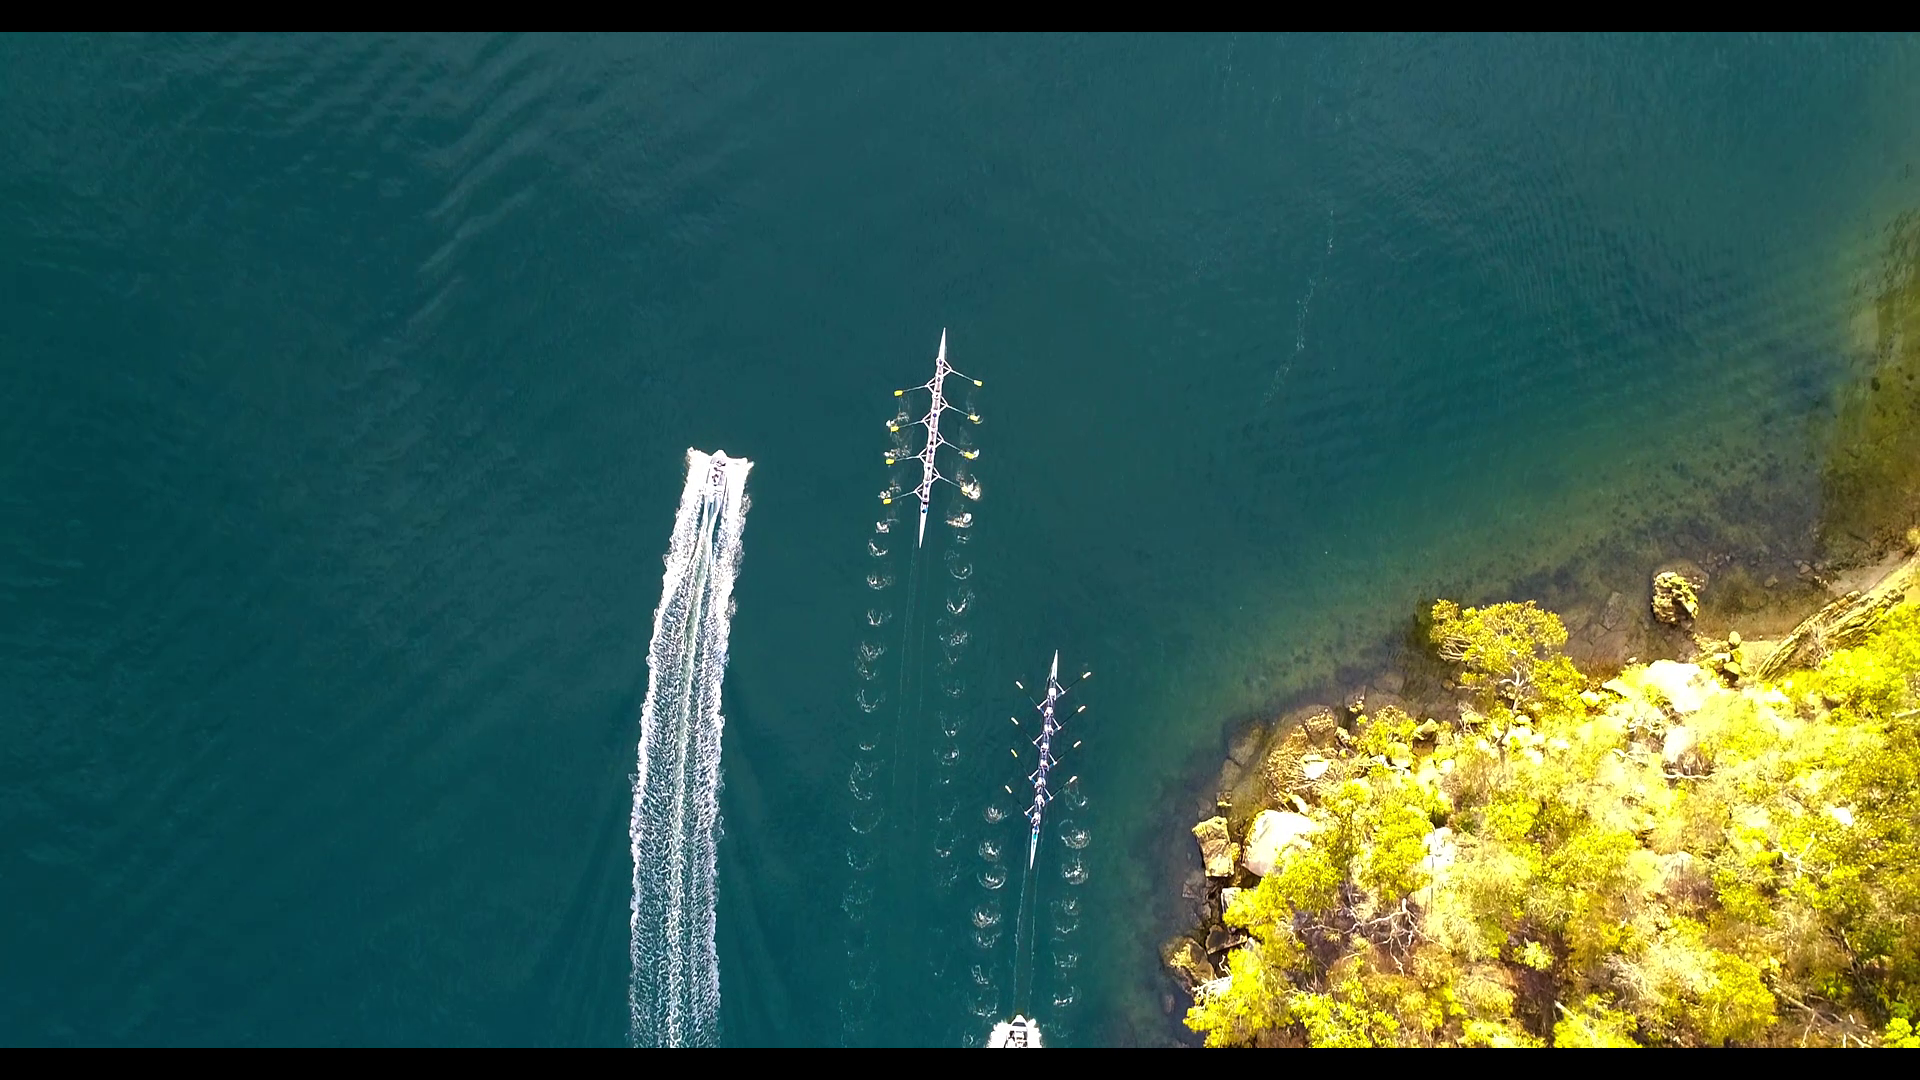 ROWING AERIAL PHOTO